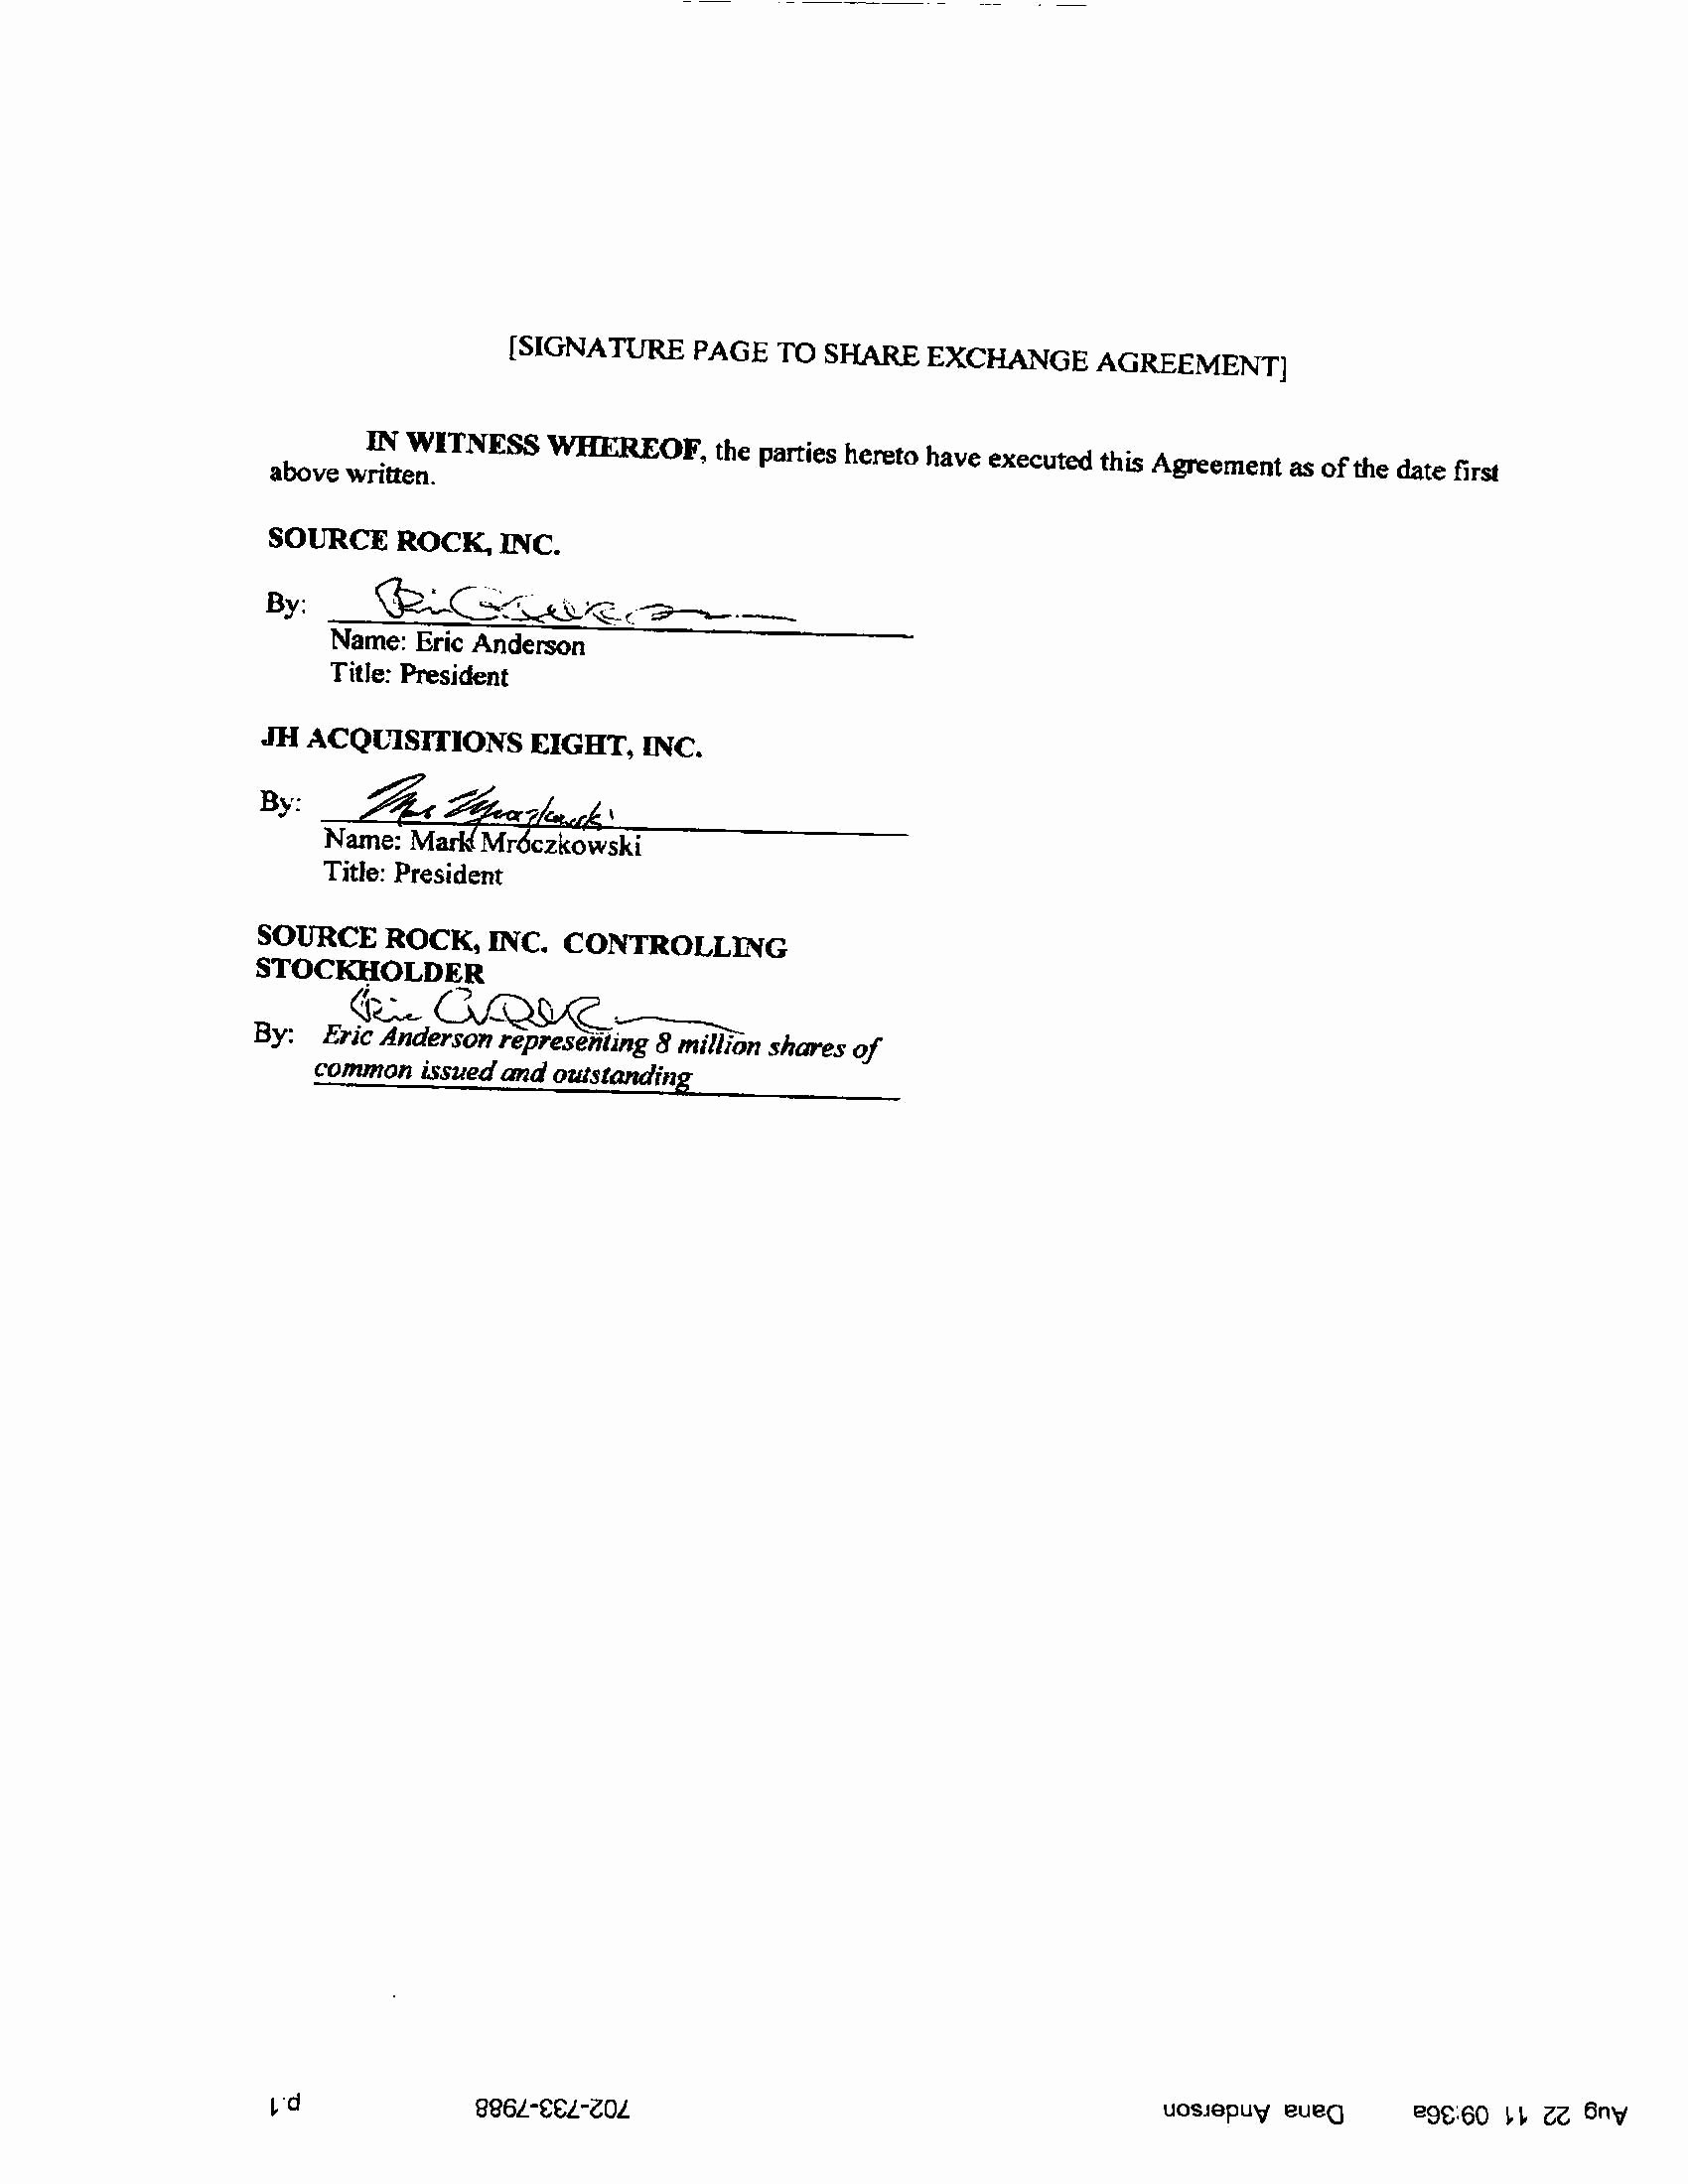 Contract Signature Page Example Awesome Edgar Filing Documents for 12